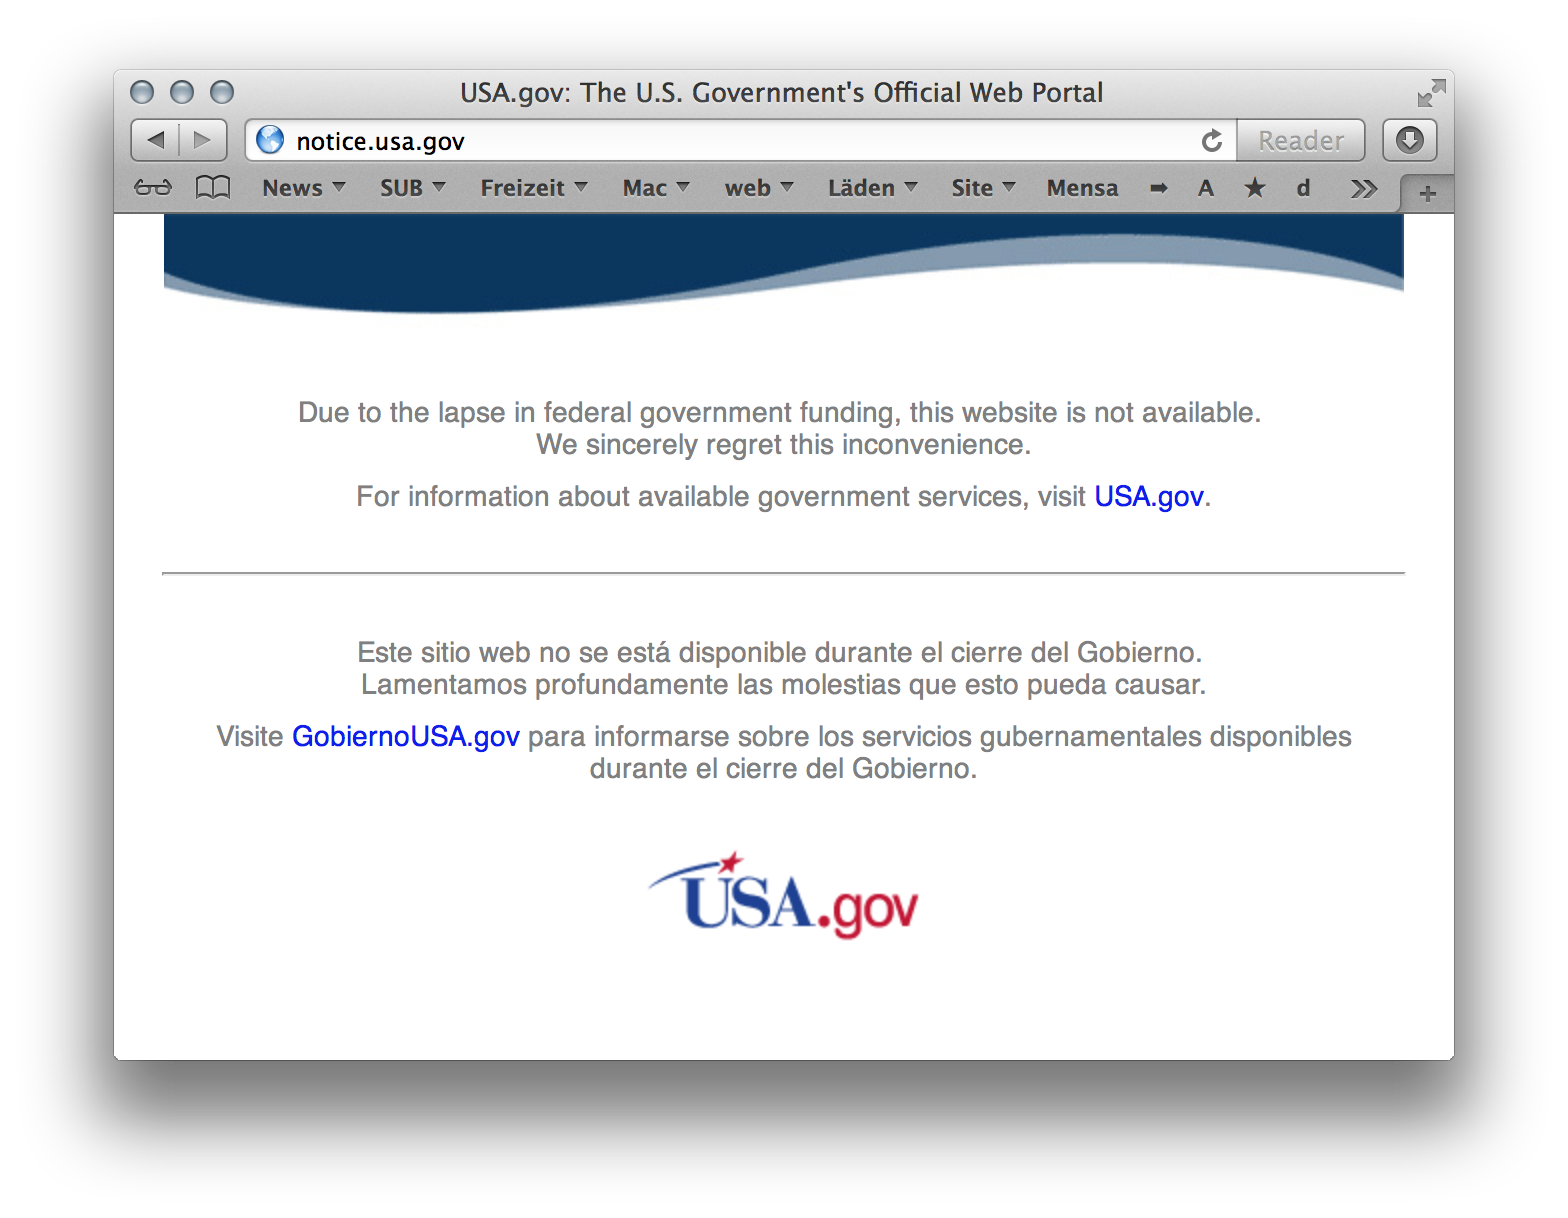 Screenshot of notice.usa.gov which appears when opening the nasa.gov site